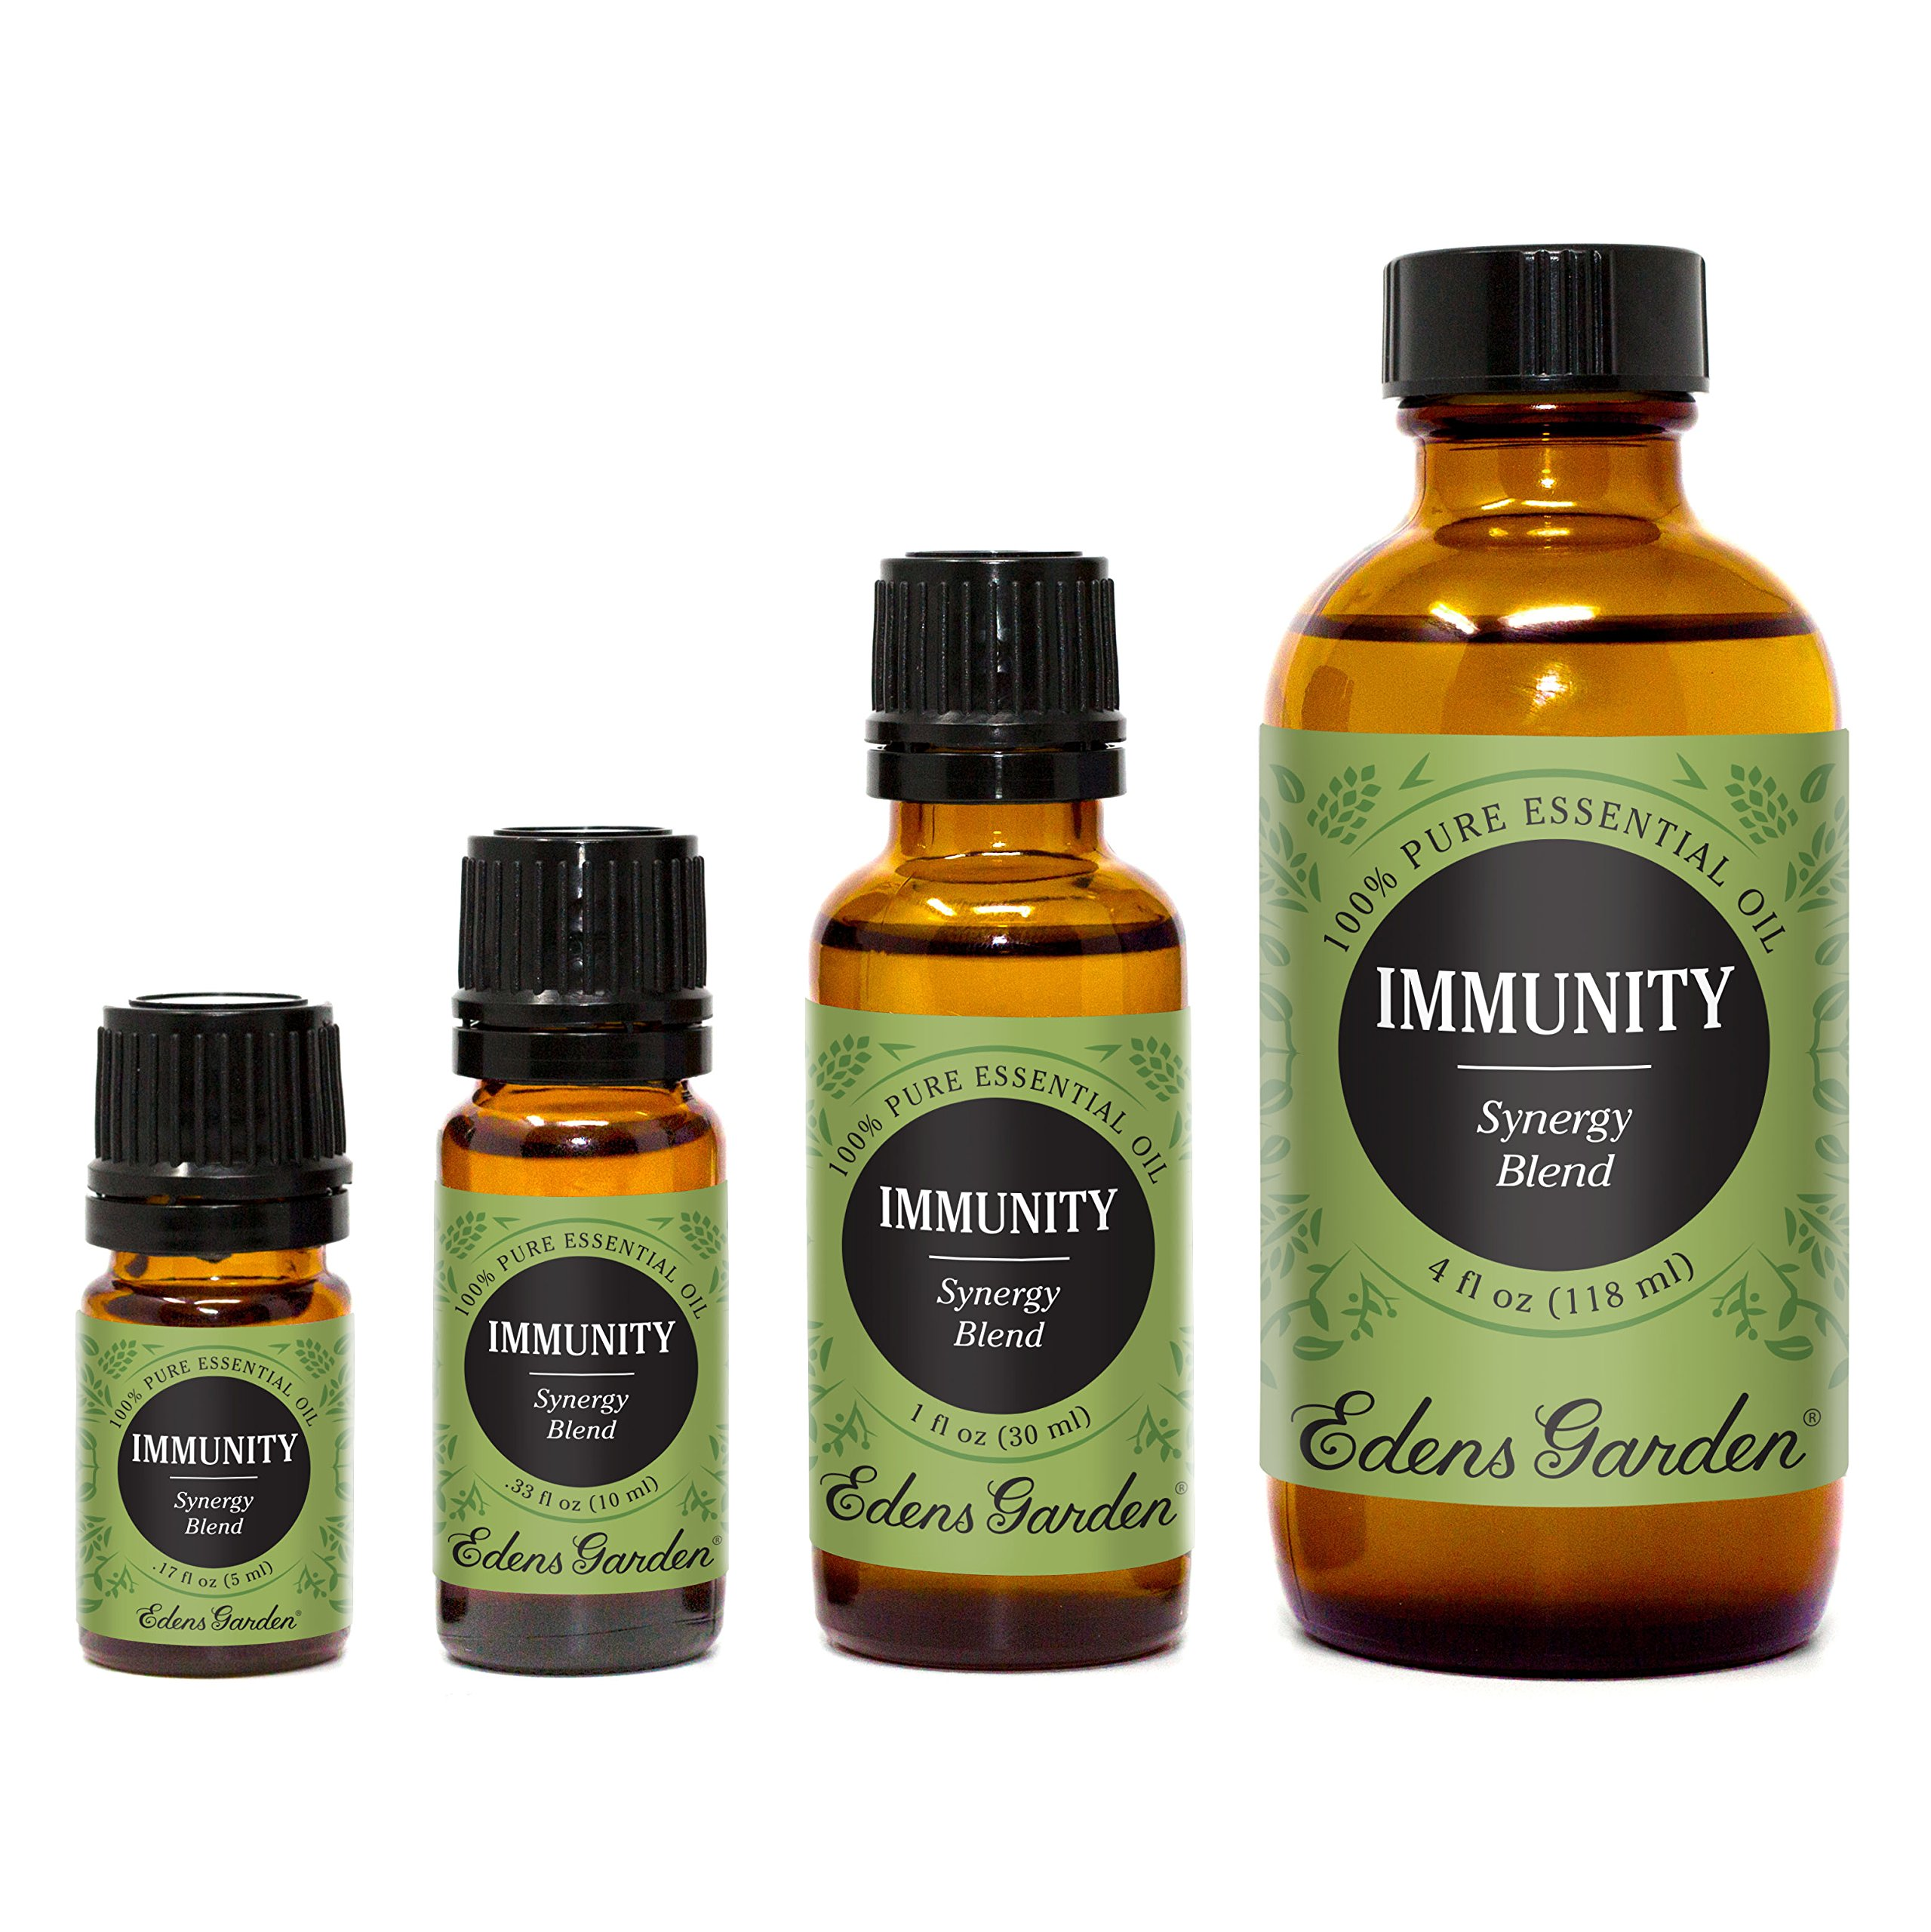 Edens Garden Immunity 30 ml Synergy Blend 100% Pure Undiluted Therapeutic Grade GC/MS Certified Essential Oil